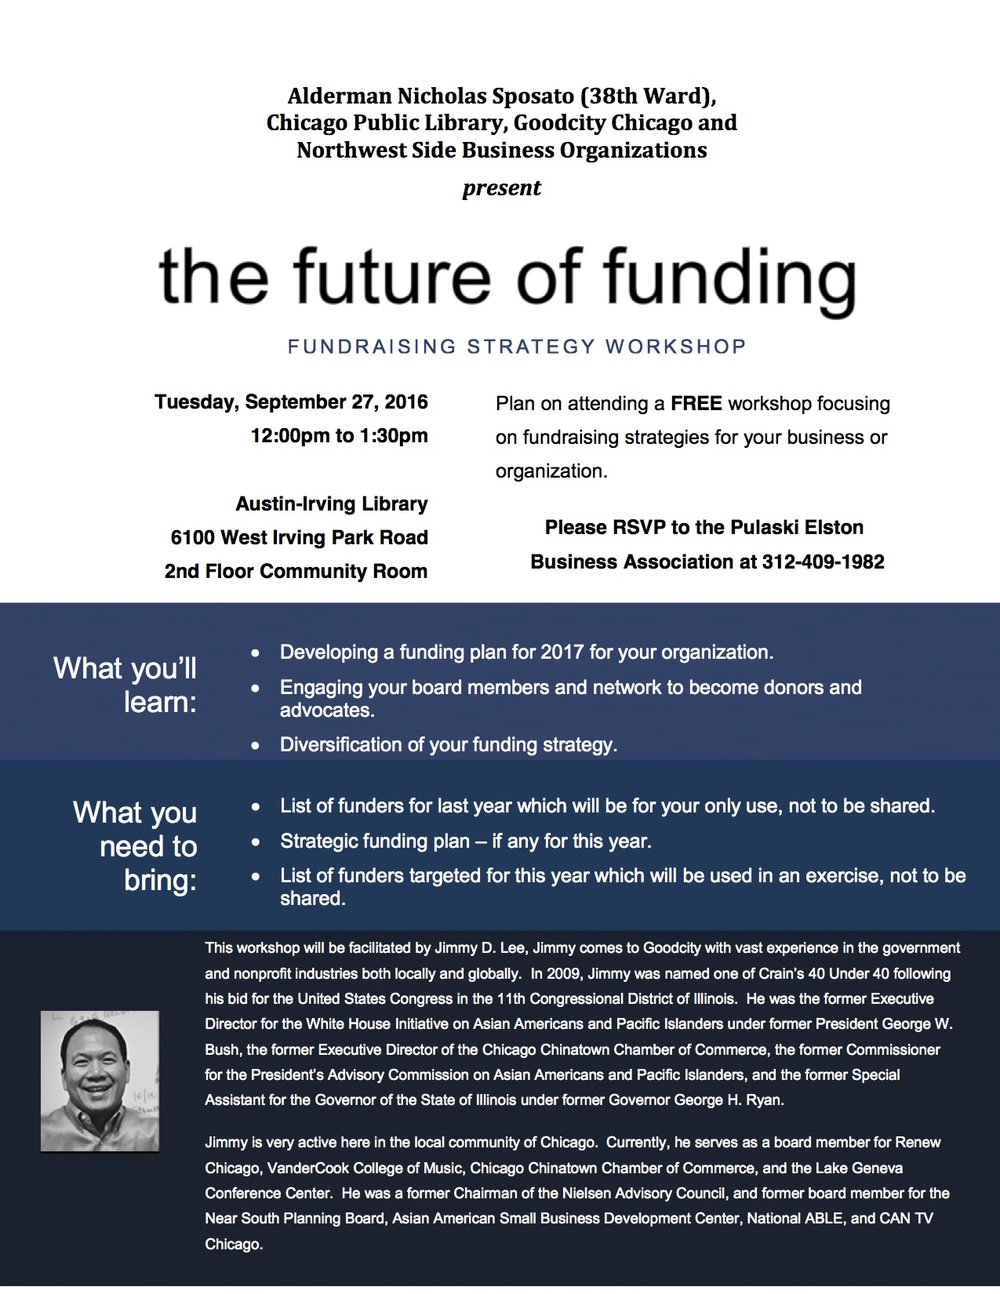 "Tuesday, 9/27/16, 12:00pm to 1:30pm – ""Future of Funding Workshop""      Austin-Irving Library, 6100 West Irving Park Road – 2nd Floor Community Room      Admission: FREE      This event is being hosted by the Alderman Nicholas Sposato (38th Ward), Chicago Public Library, Goodcity Chicago and Portage Park Chamber of Commerce, in collaboration with the Northcenter Chamber of Commerce, Northwest Connection Chamber of Commerce, Pulaski Elston Business Association and Six Corners Association. The featured speaker will be Jimmy D. Lee of Goodcity. This workshop is designed for small businesses and non-profits organizations looking for new strategies to generate revenue. There will also be a free business card raffle and a complimentary lunch will be provided. For more information, or to RSVP, please contact the PPCC office at  773-777-2020  or at beebuilding@aol.com."